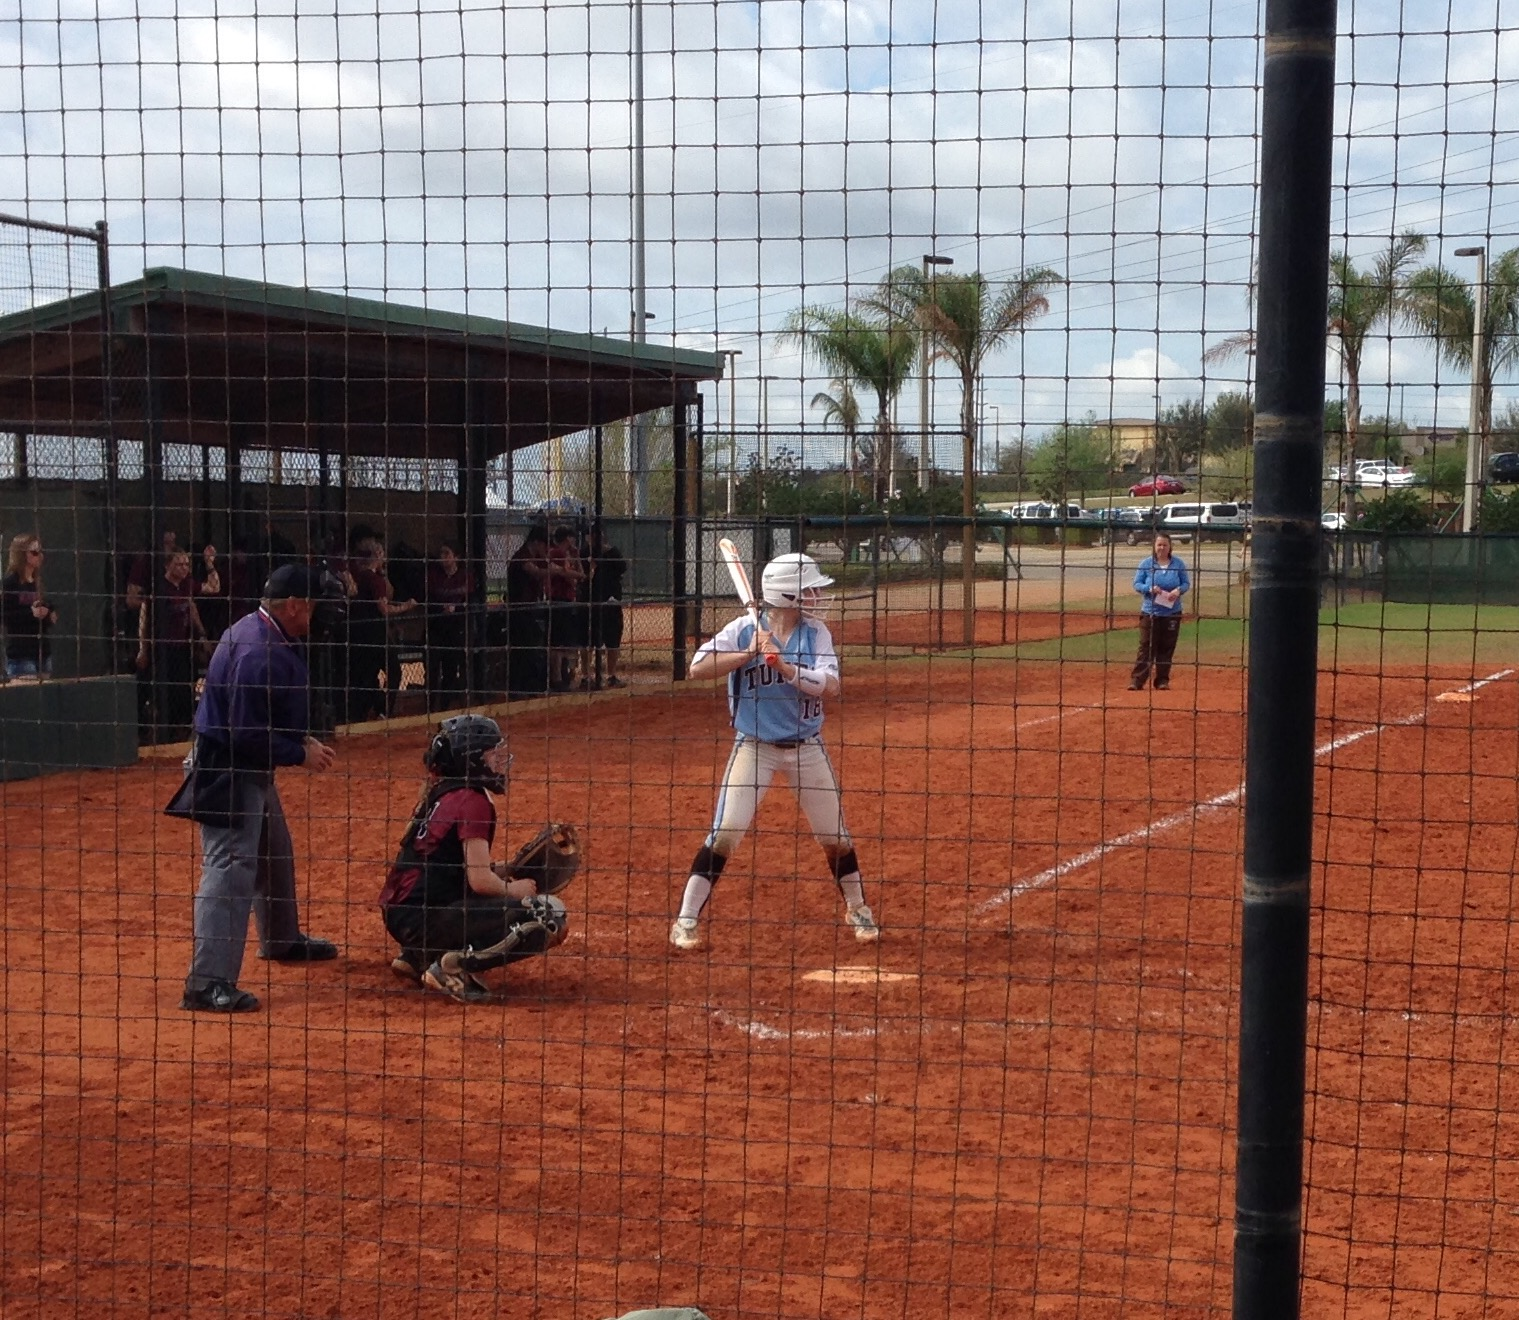 That's me! Hitting for the very first time in my college career. That's Coach in the background.